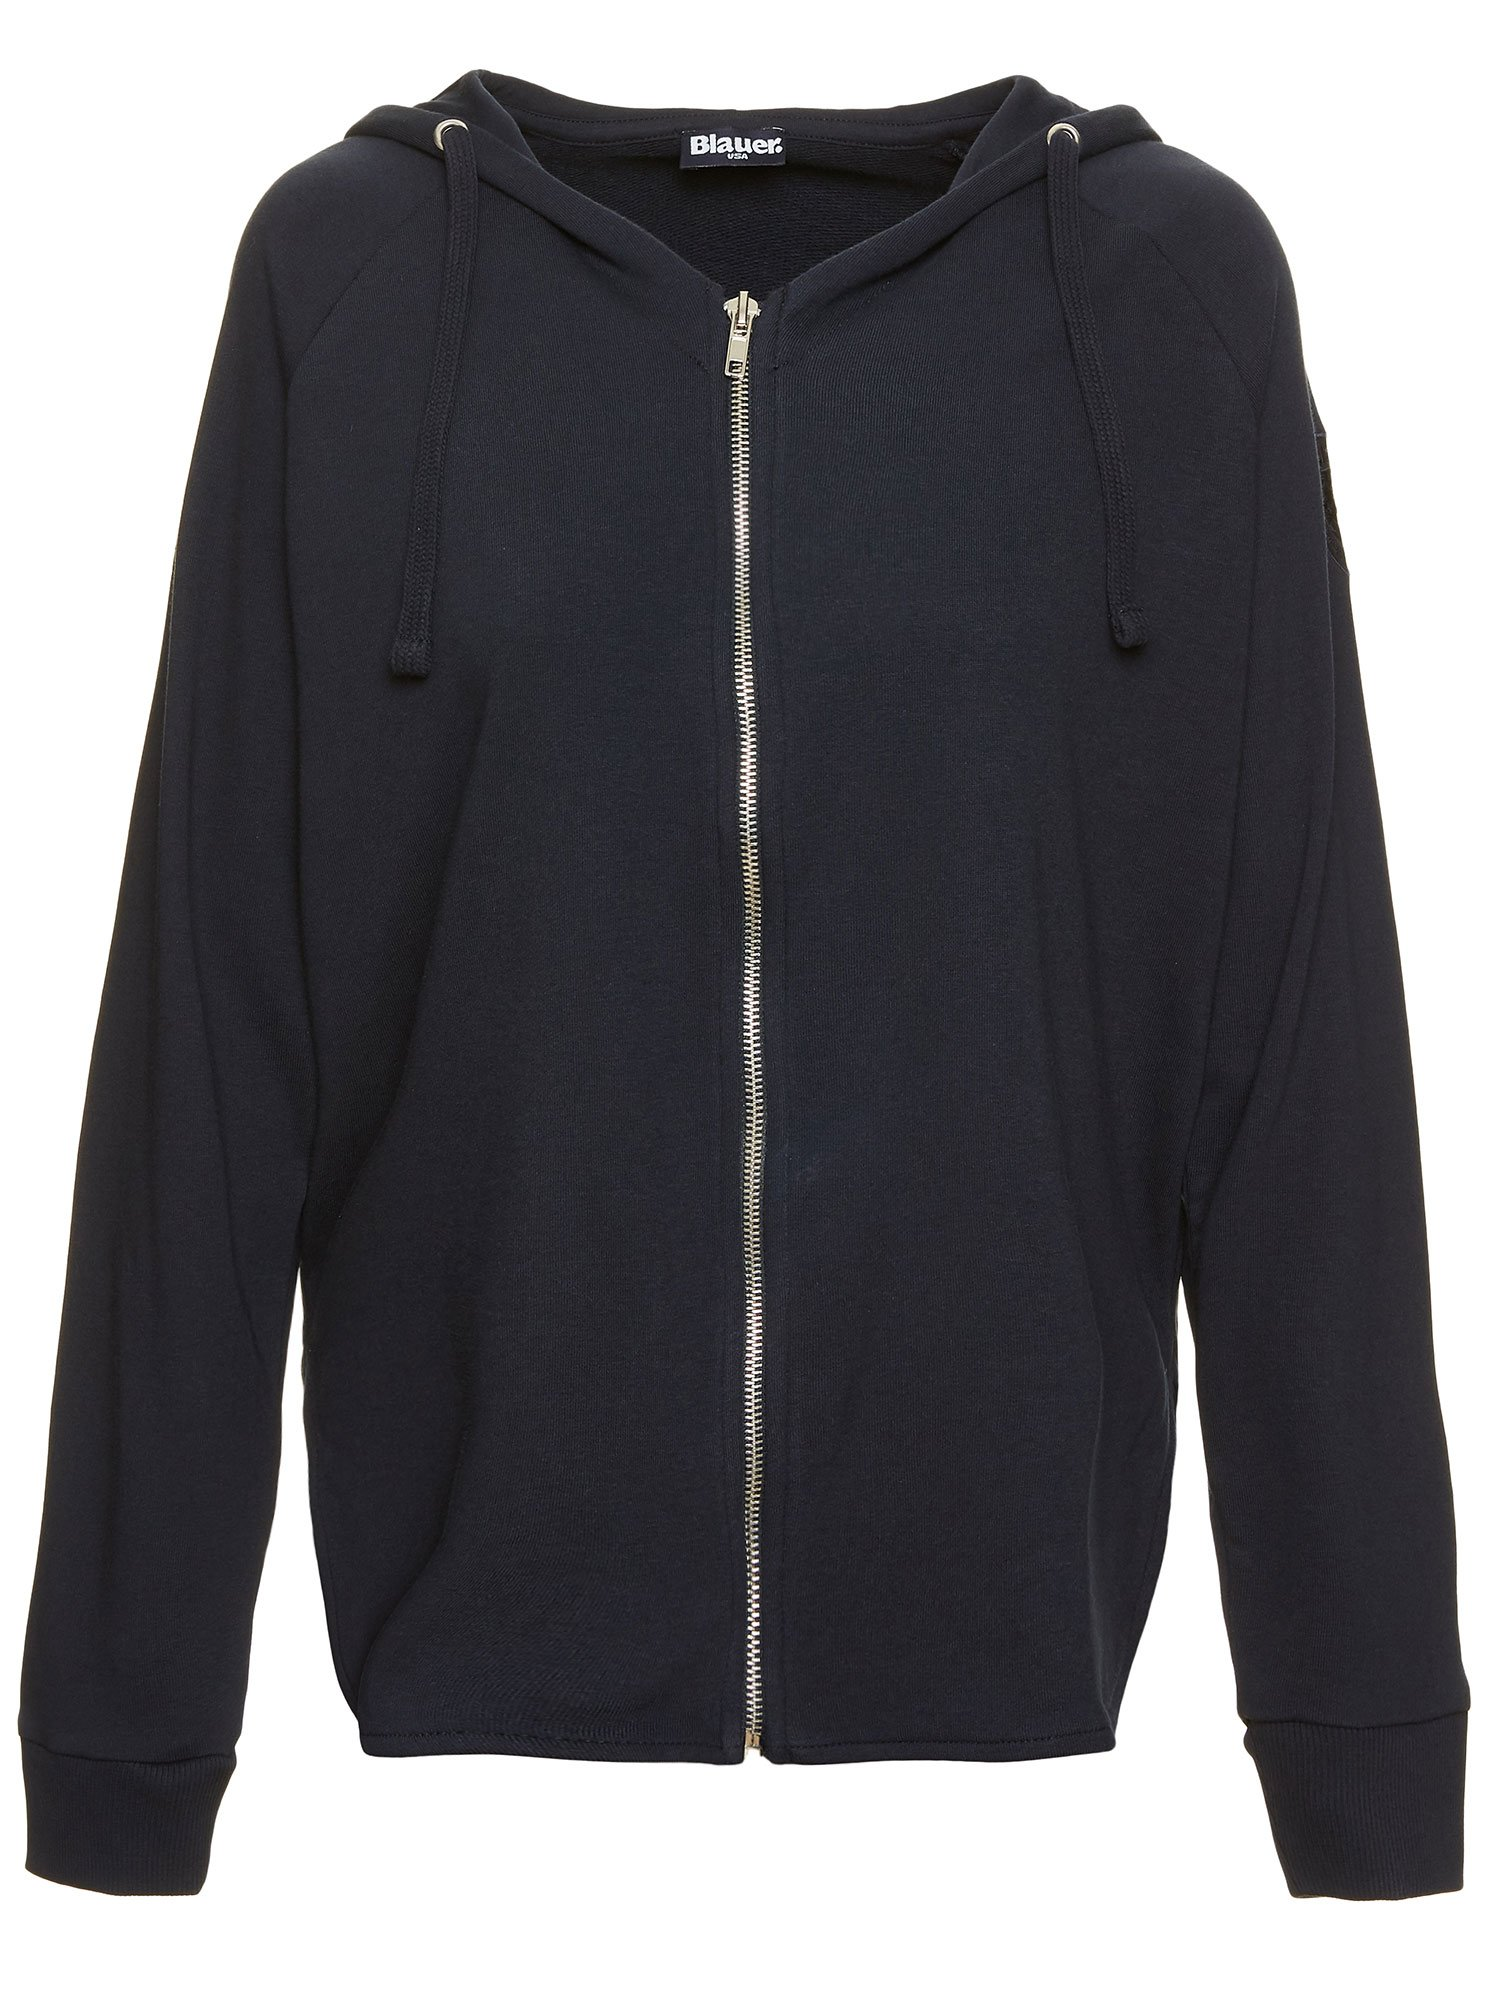 MELANGE SWEATSHIRT WITH HOOD - Blauer